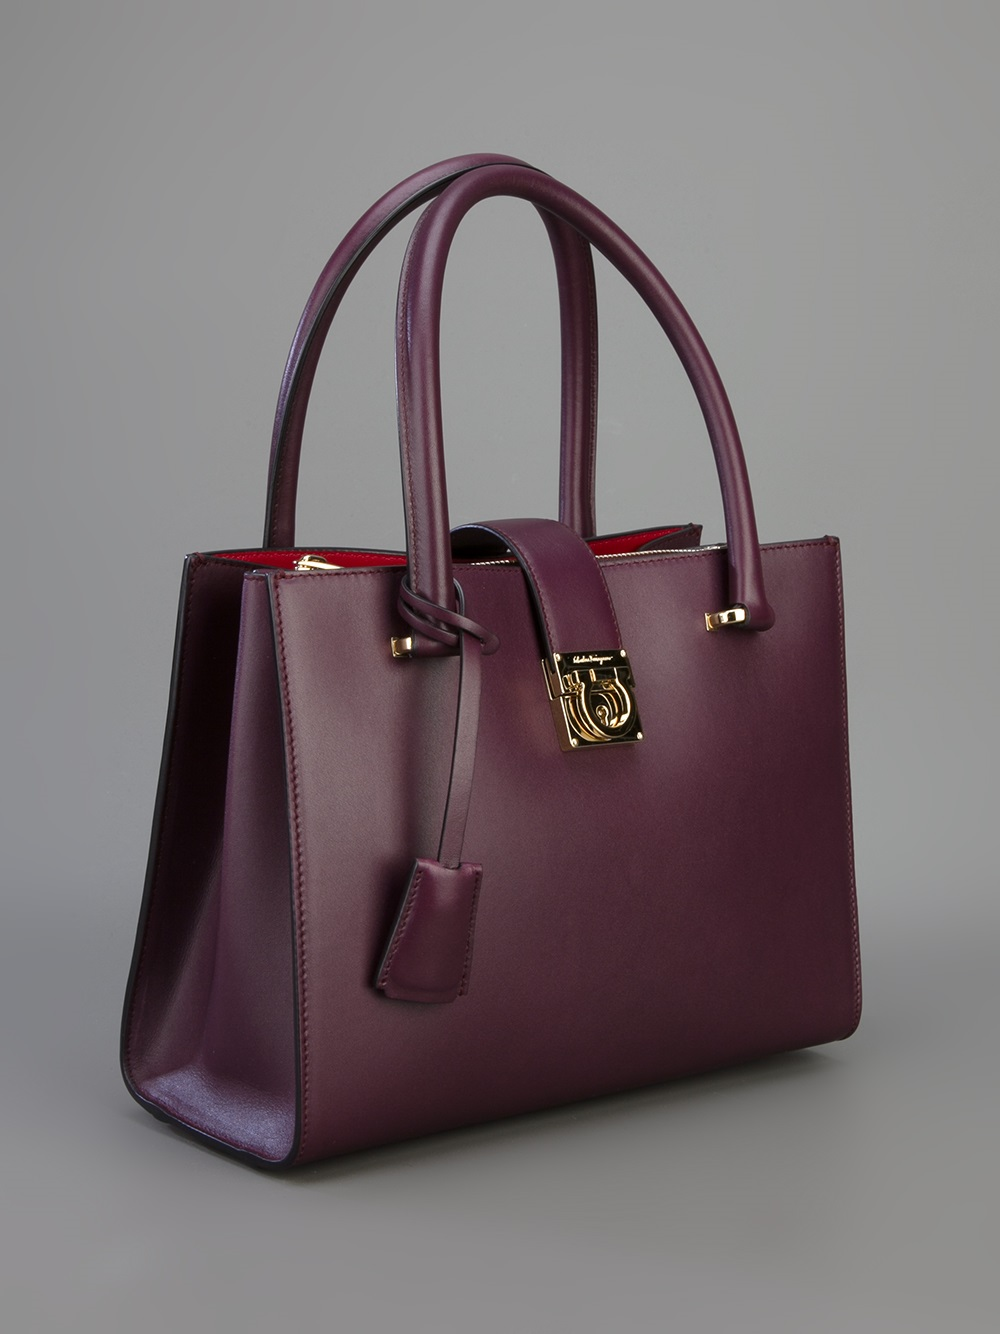 10e636d08c31 Lyst - Ferragamo Juliette Tote in Purple